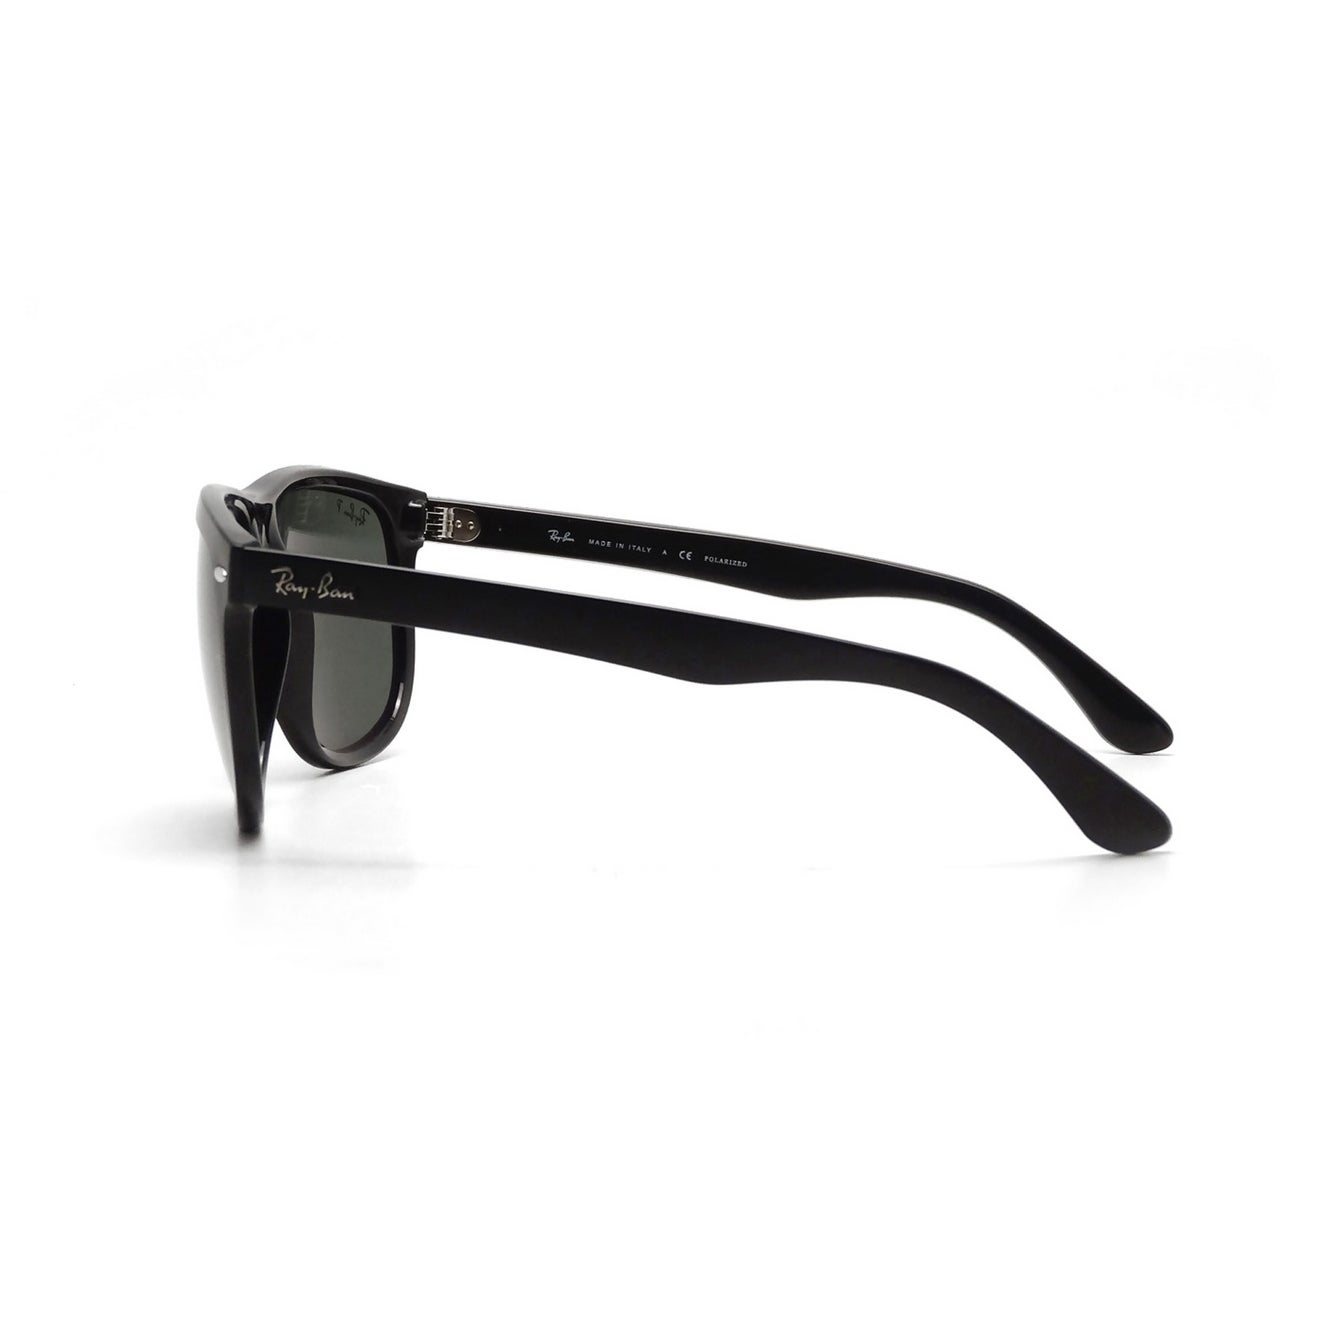 3398cc25065 Shop Ray-Ban Men s RB4147 601 58 60 Square Plastic Black Green Sunglasses -  Free Shipping Today - Overstock - 14602288